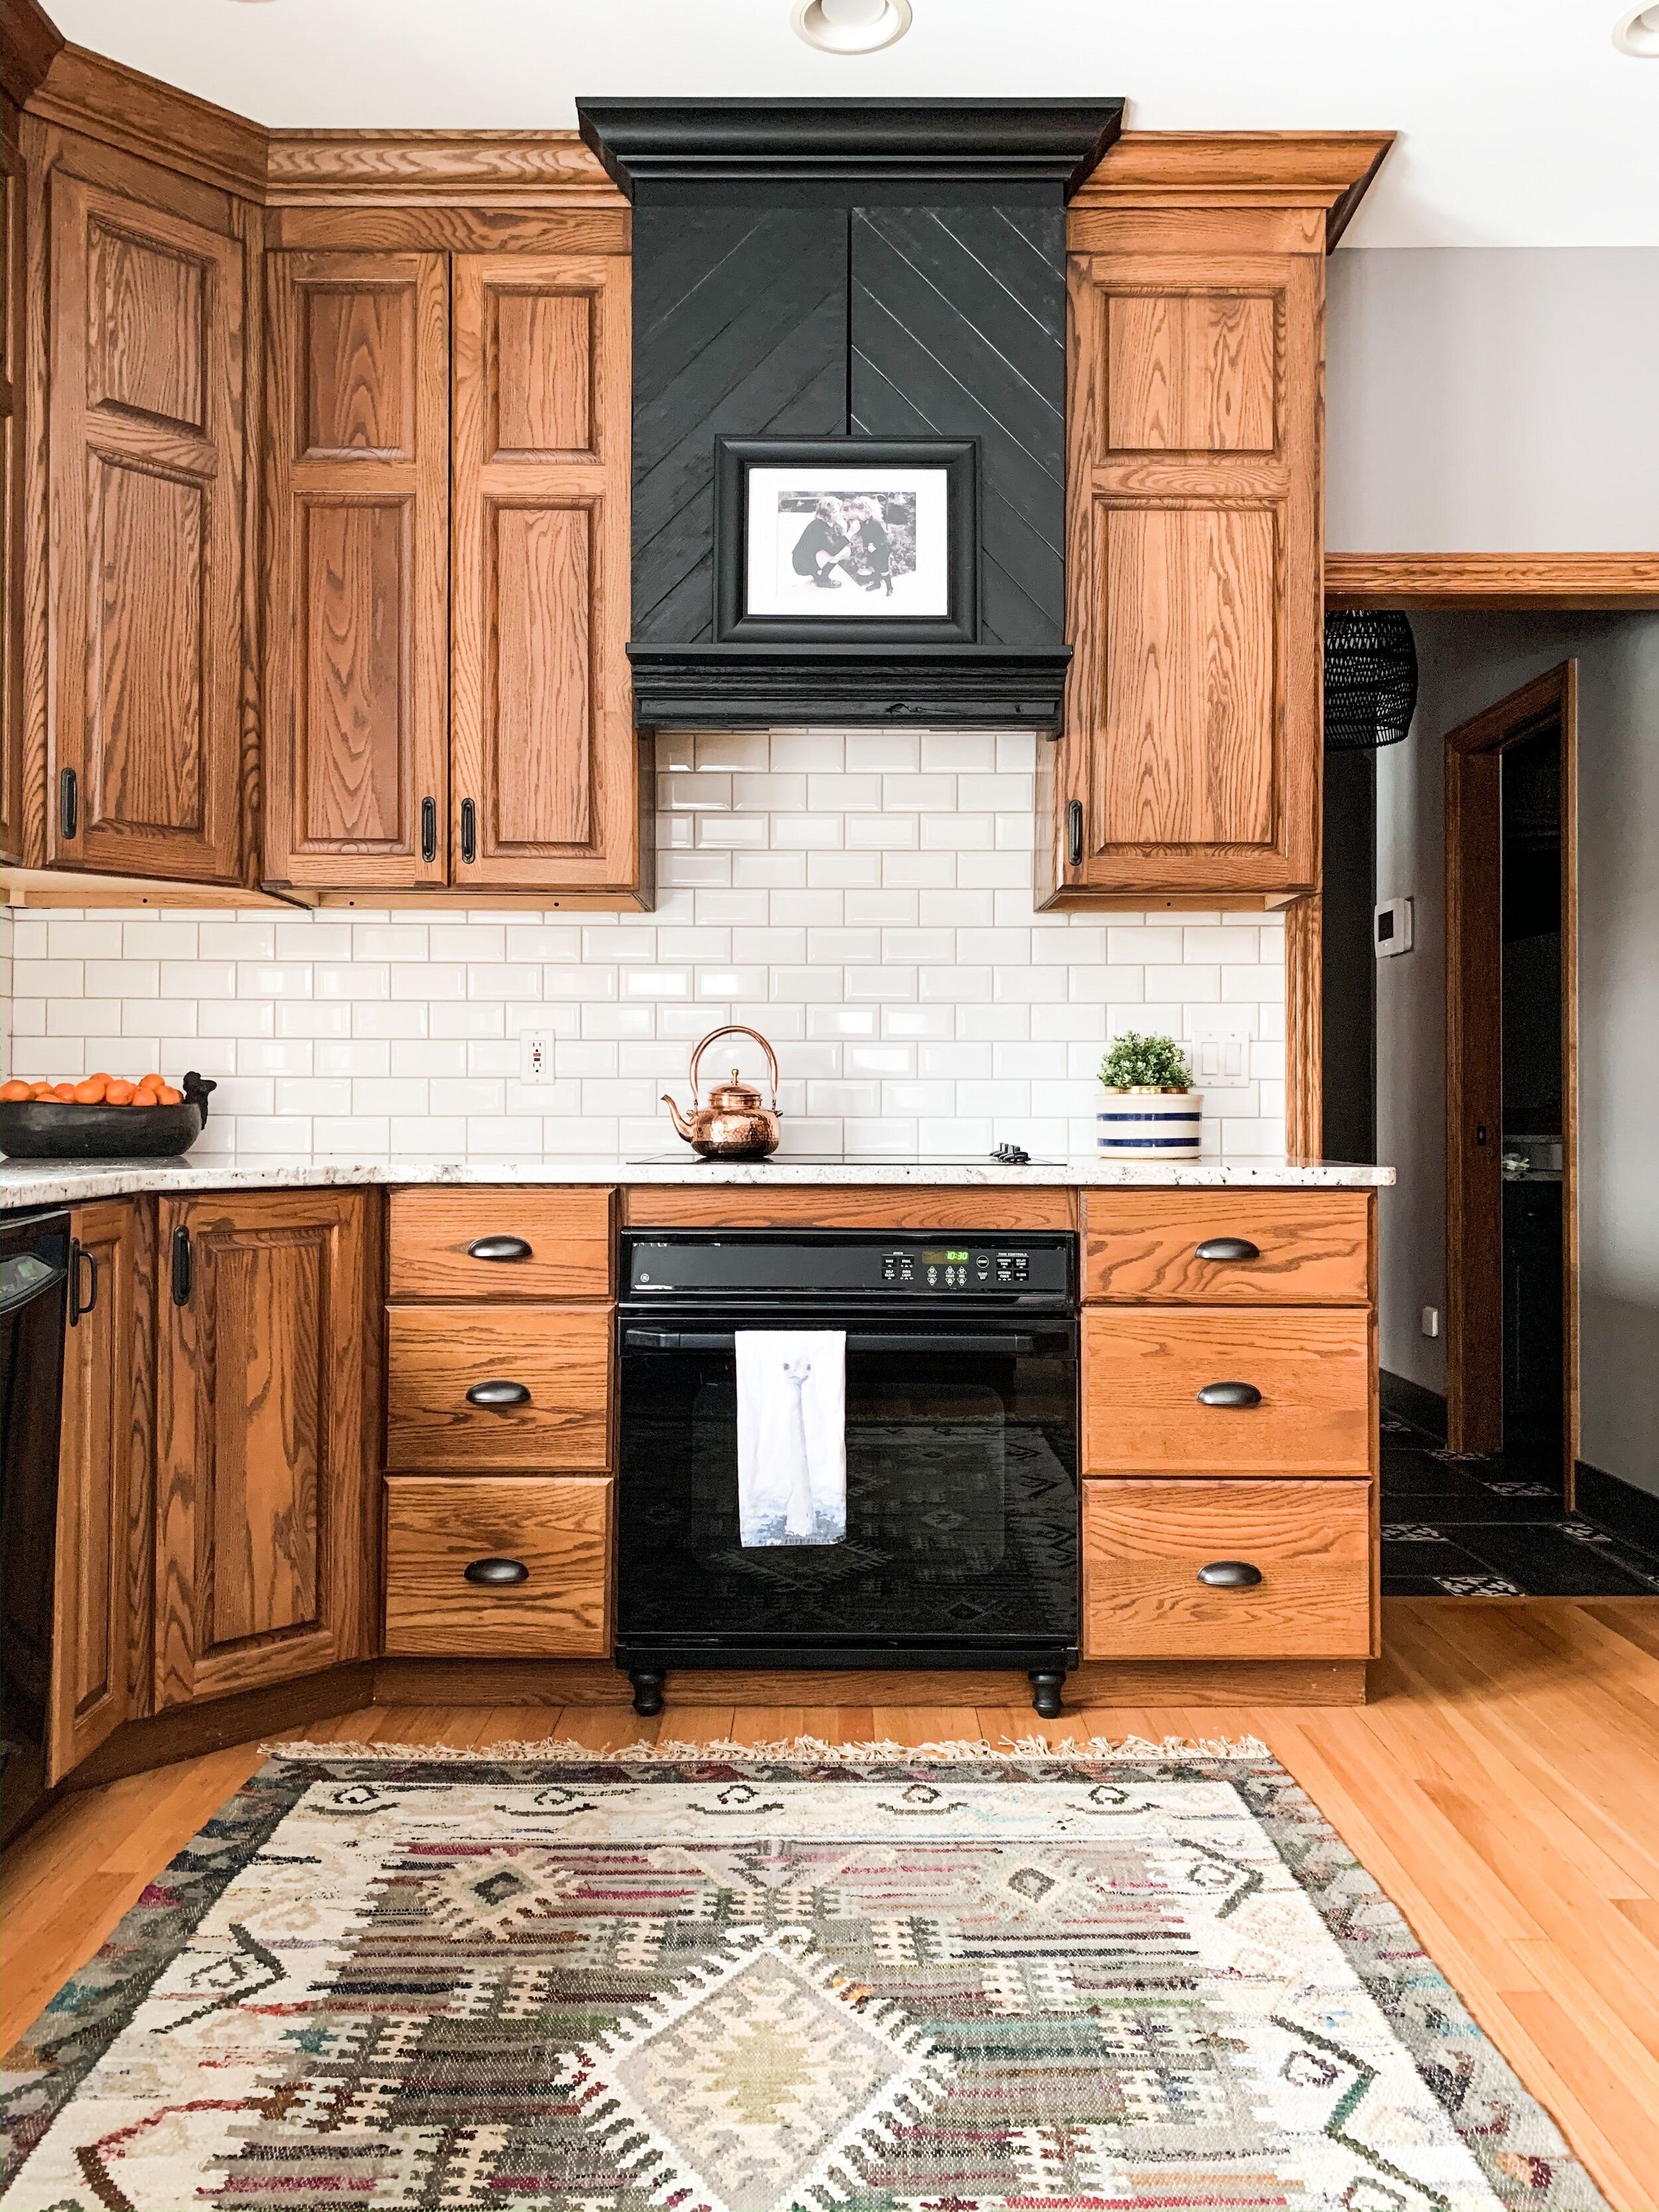 How to make an oak kitchen cool again :) in 2020 (With ...